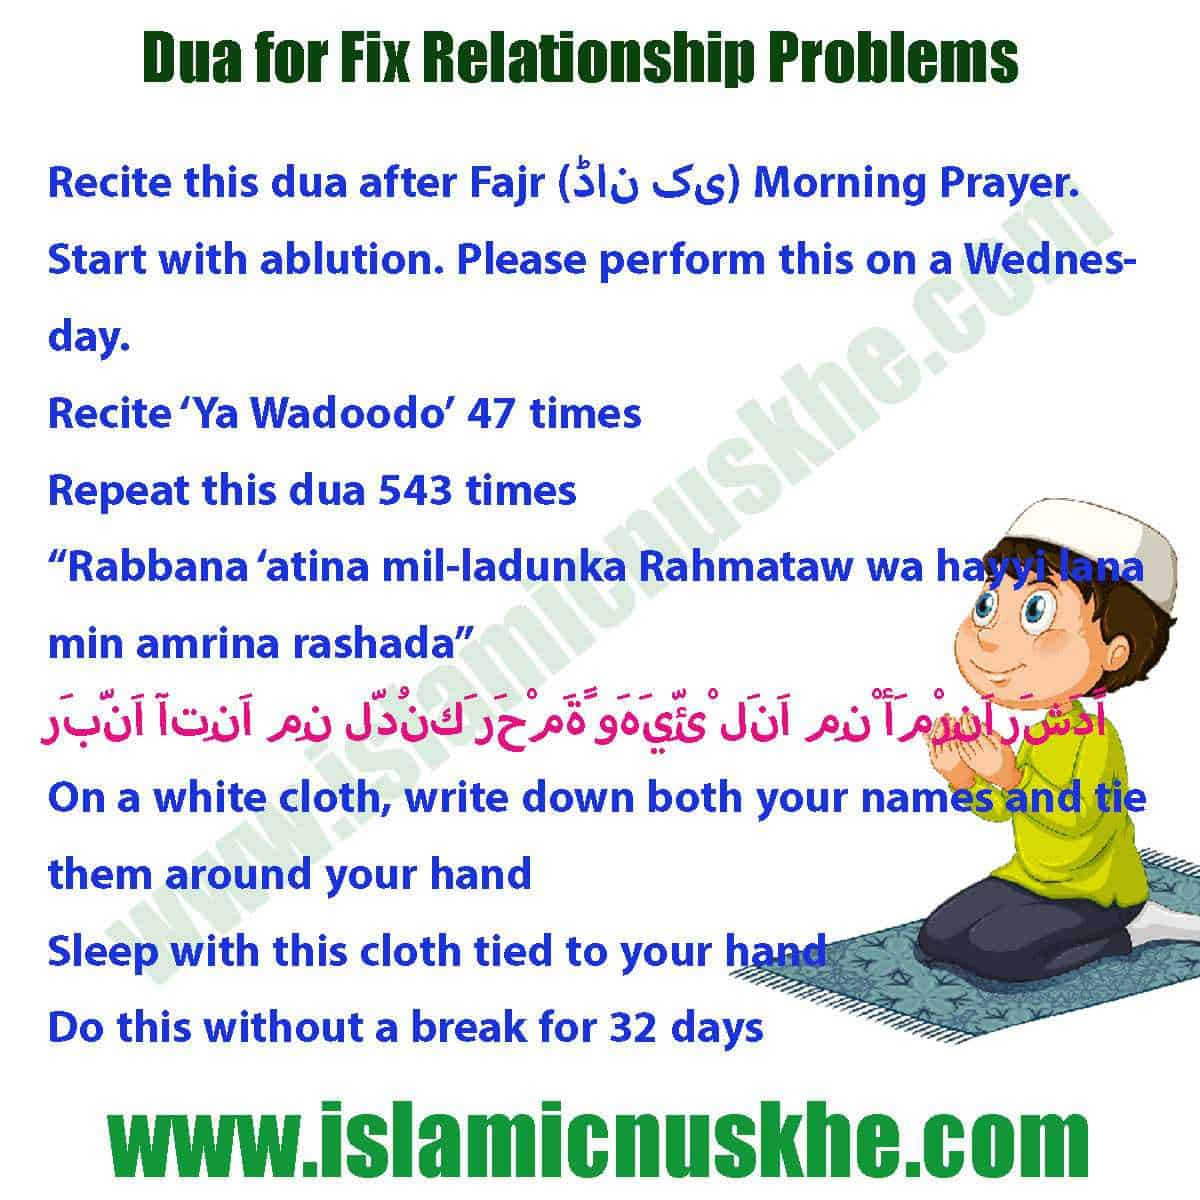 Here is Dua for Fix Relationship Problems Step by Step